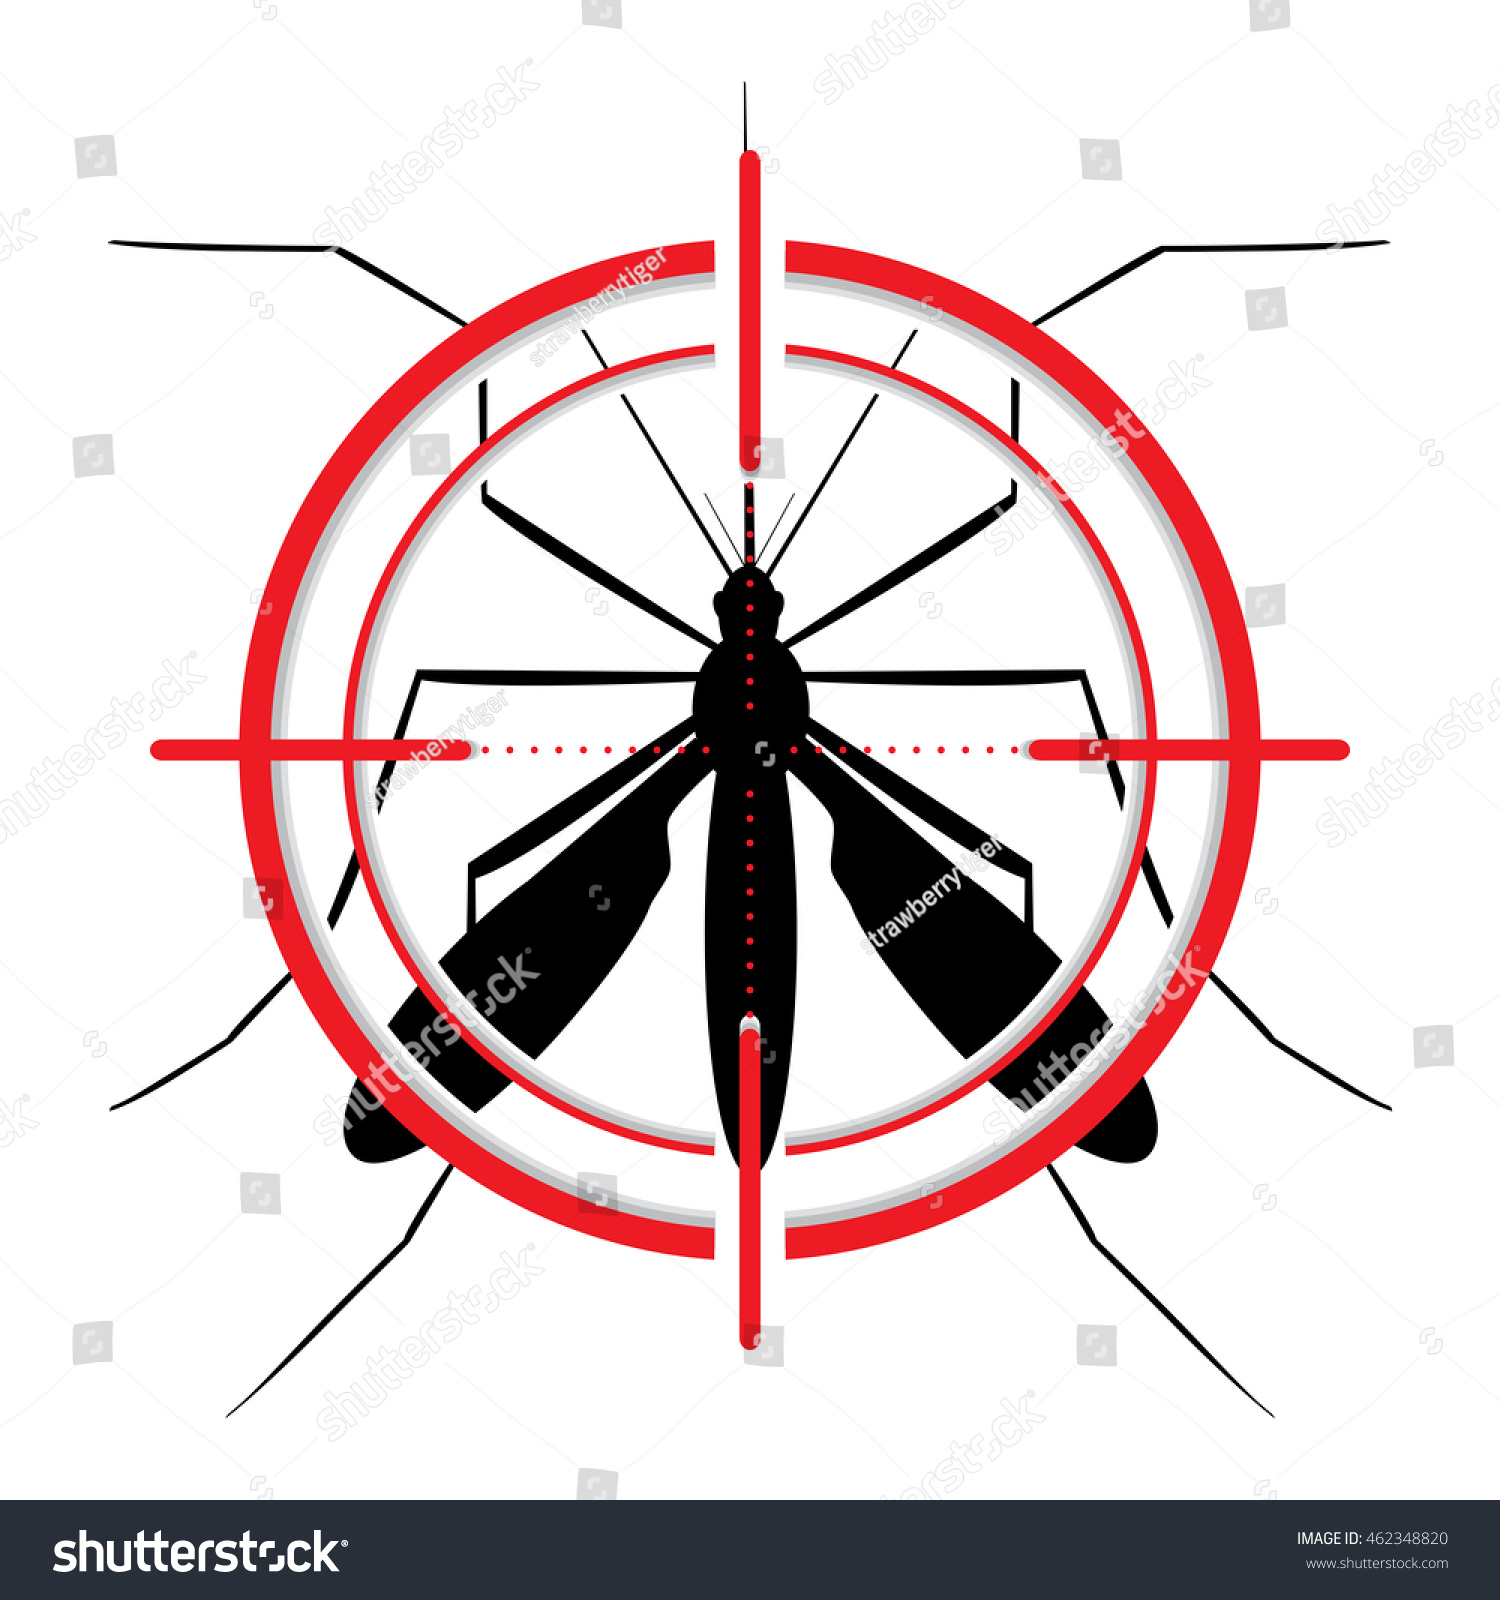 Mosquito stilt target sight signal target stock illustration mosquito with stilt target sight signal target symbol ideal for educational informational buycottarizona Image collections